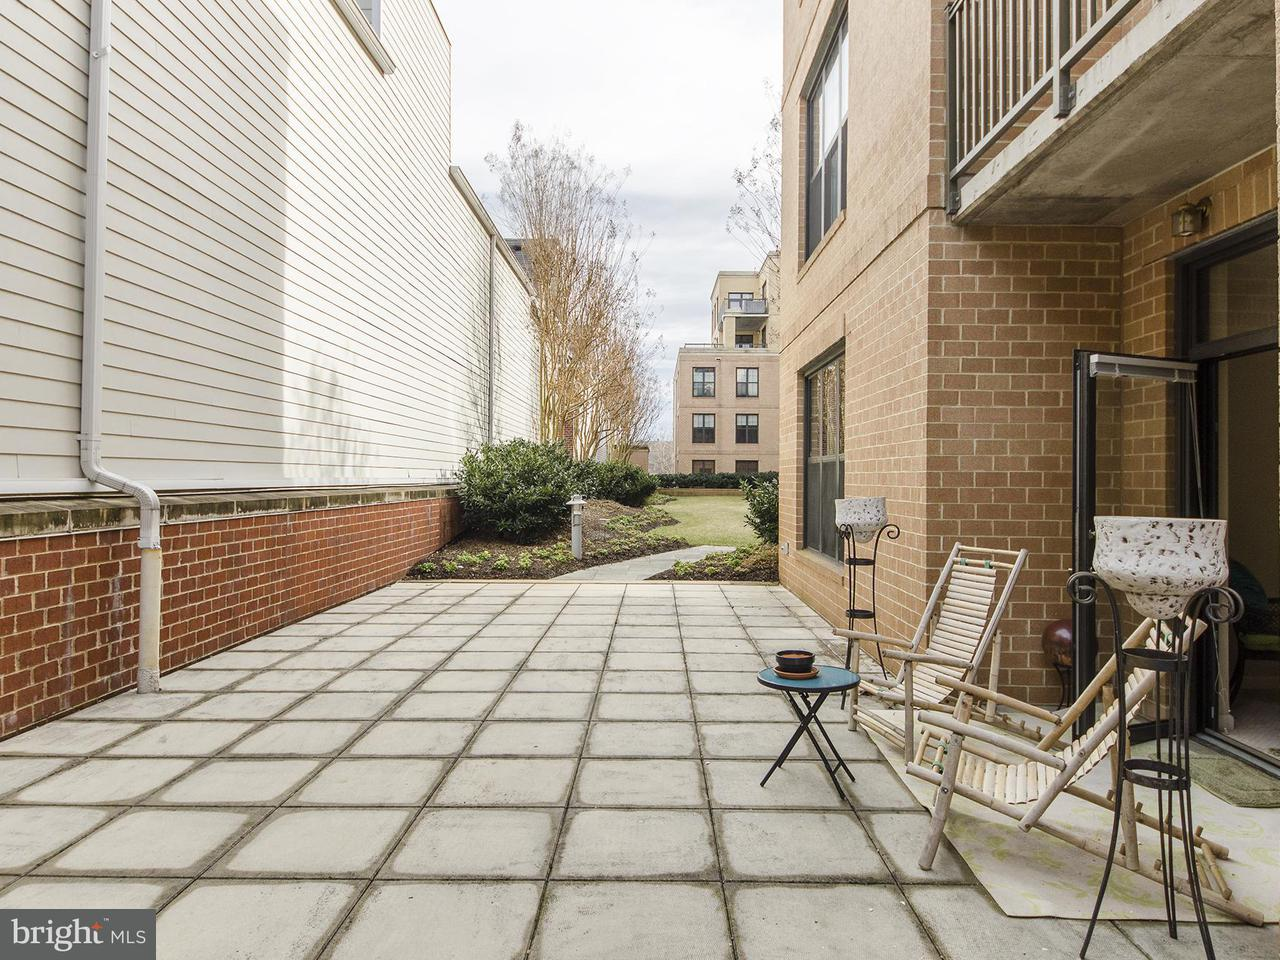 Additional photo for property listing at 444 Broad St W #308 444 Broad St W #308 弗尔斯切赫, 弗吉尼亚州 22046 美国